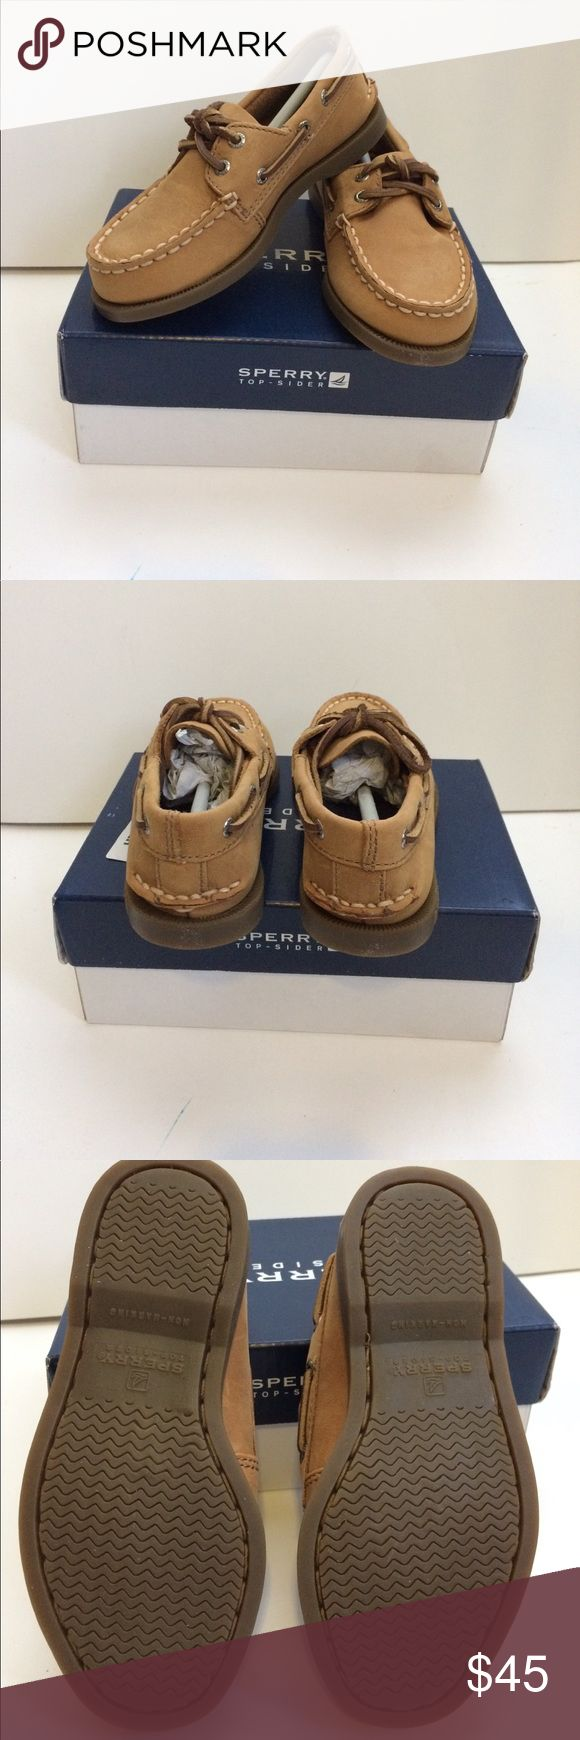 Boys Sperry Top-sider Sahara Leather Size 9 1/2 Boys Sperry Top-sider Sahara Leather Size 9 1/2 Sperry Top-Sider Shoes